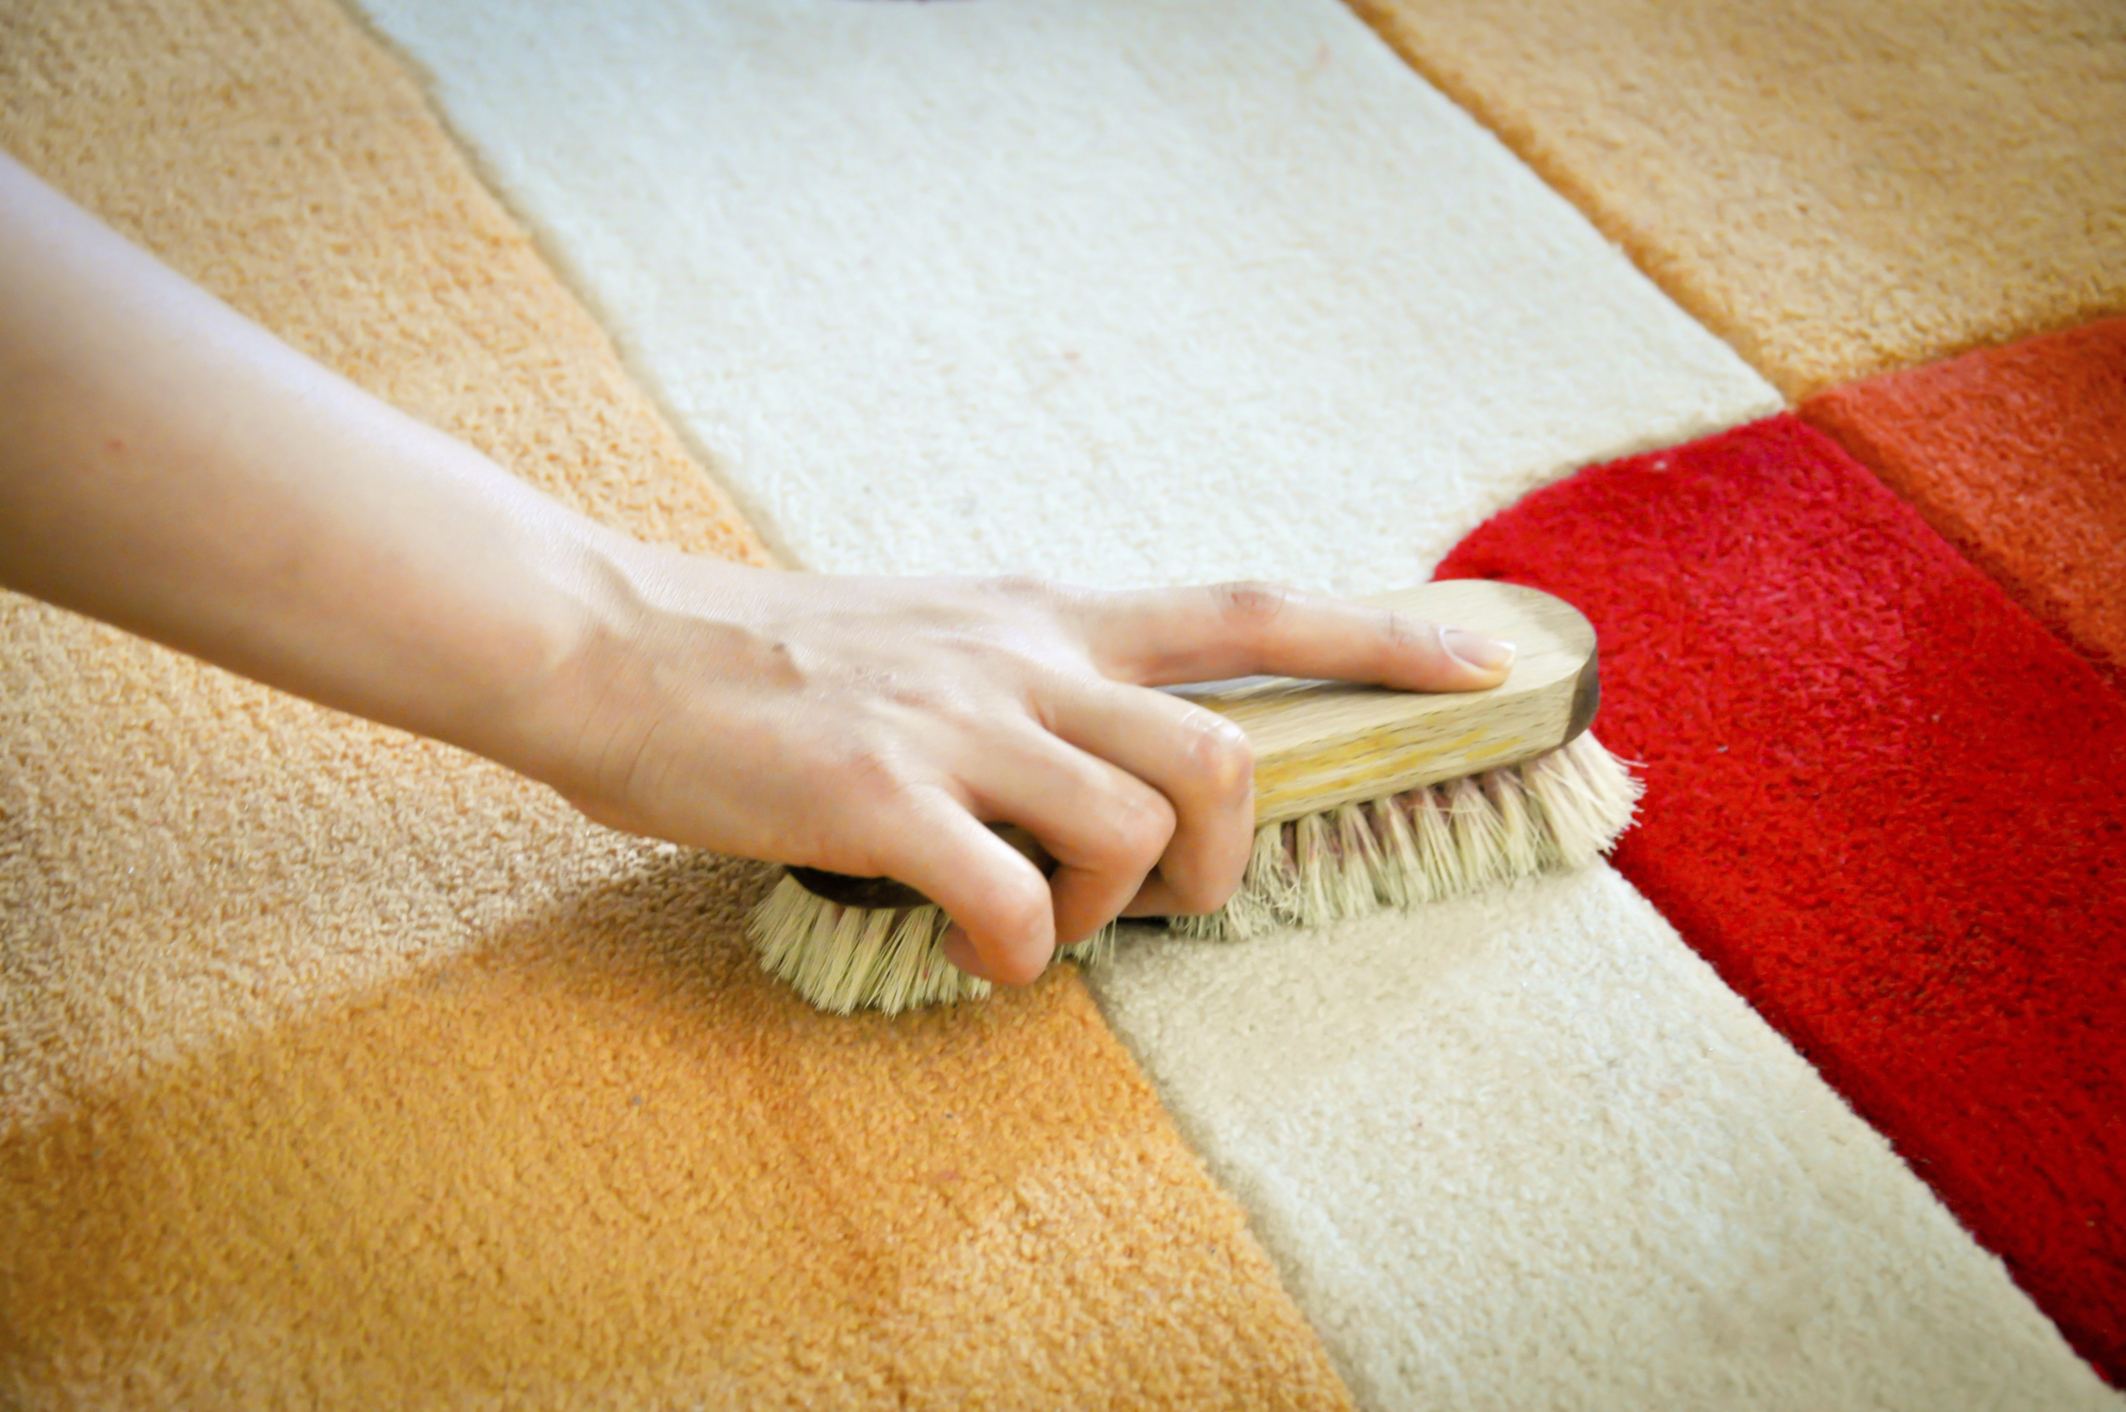 How Can I Clean The Carpet Safely For My Baby